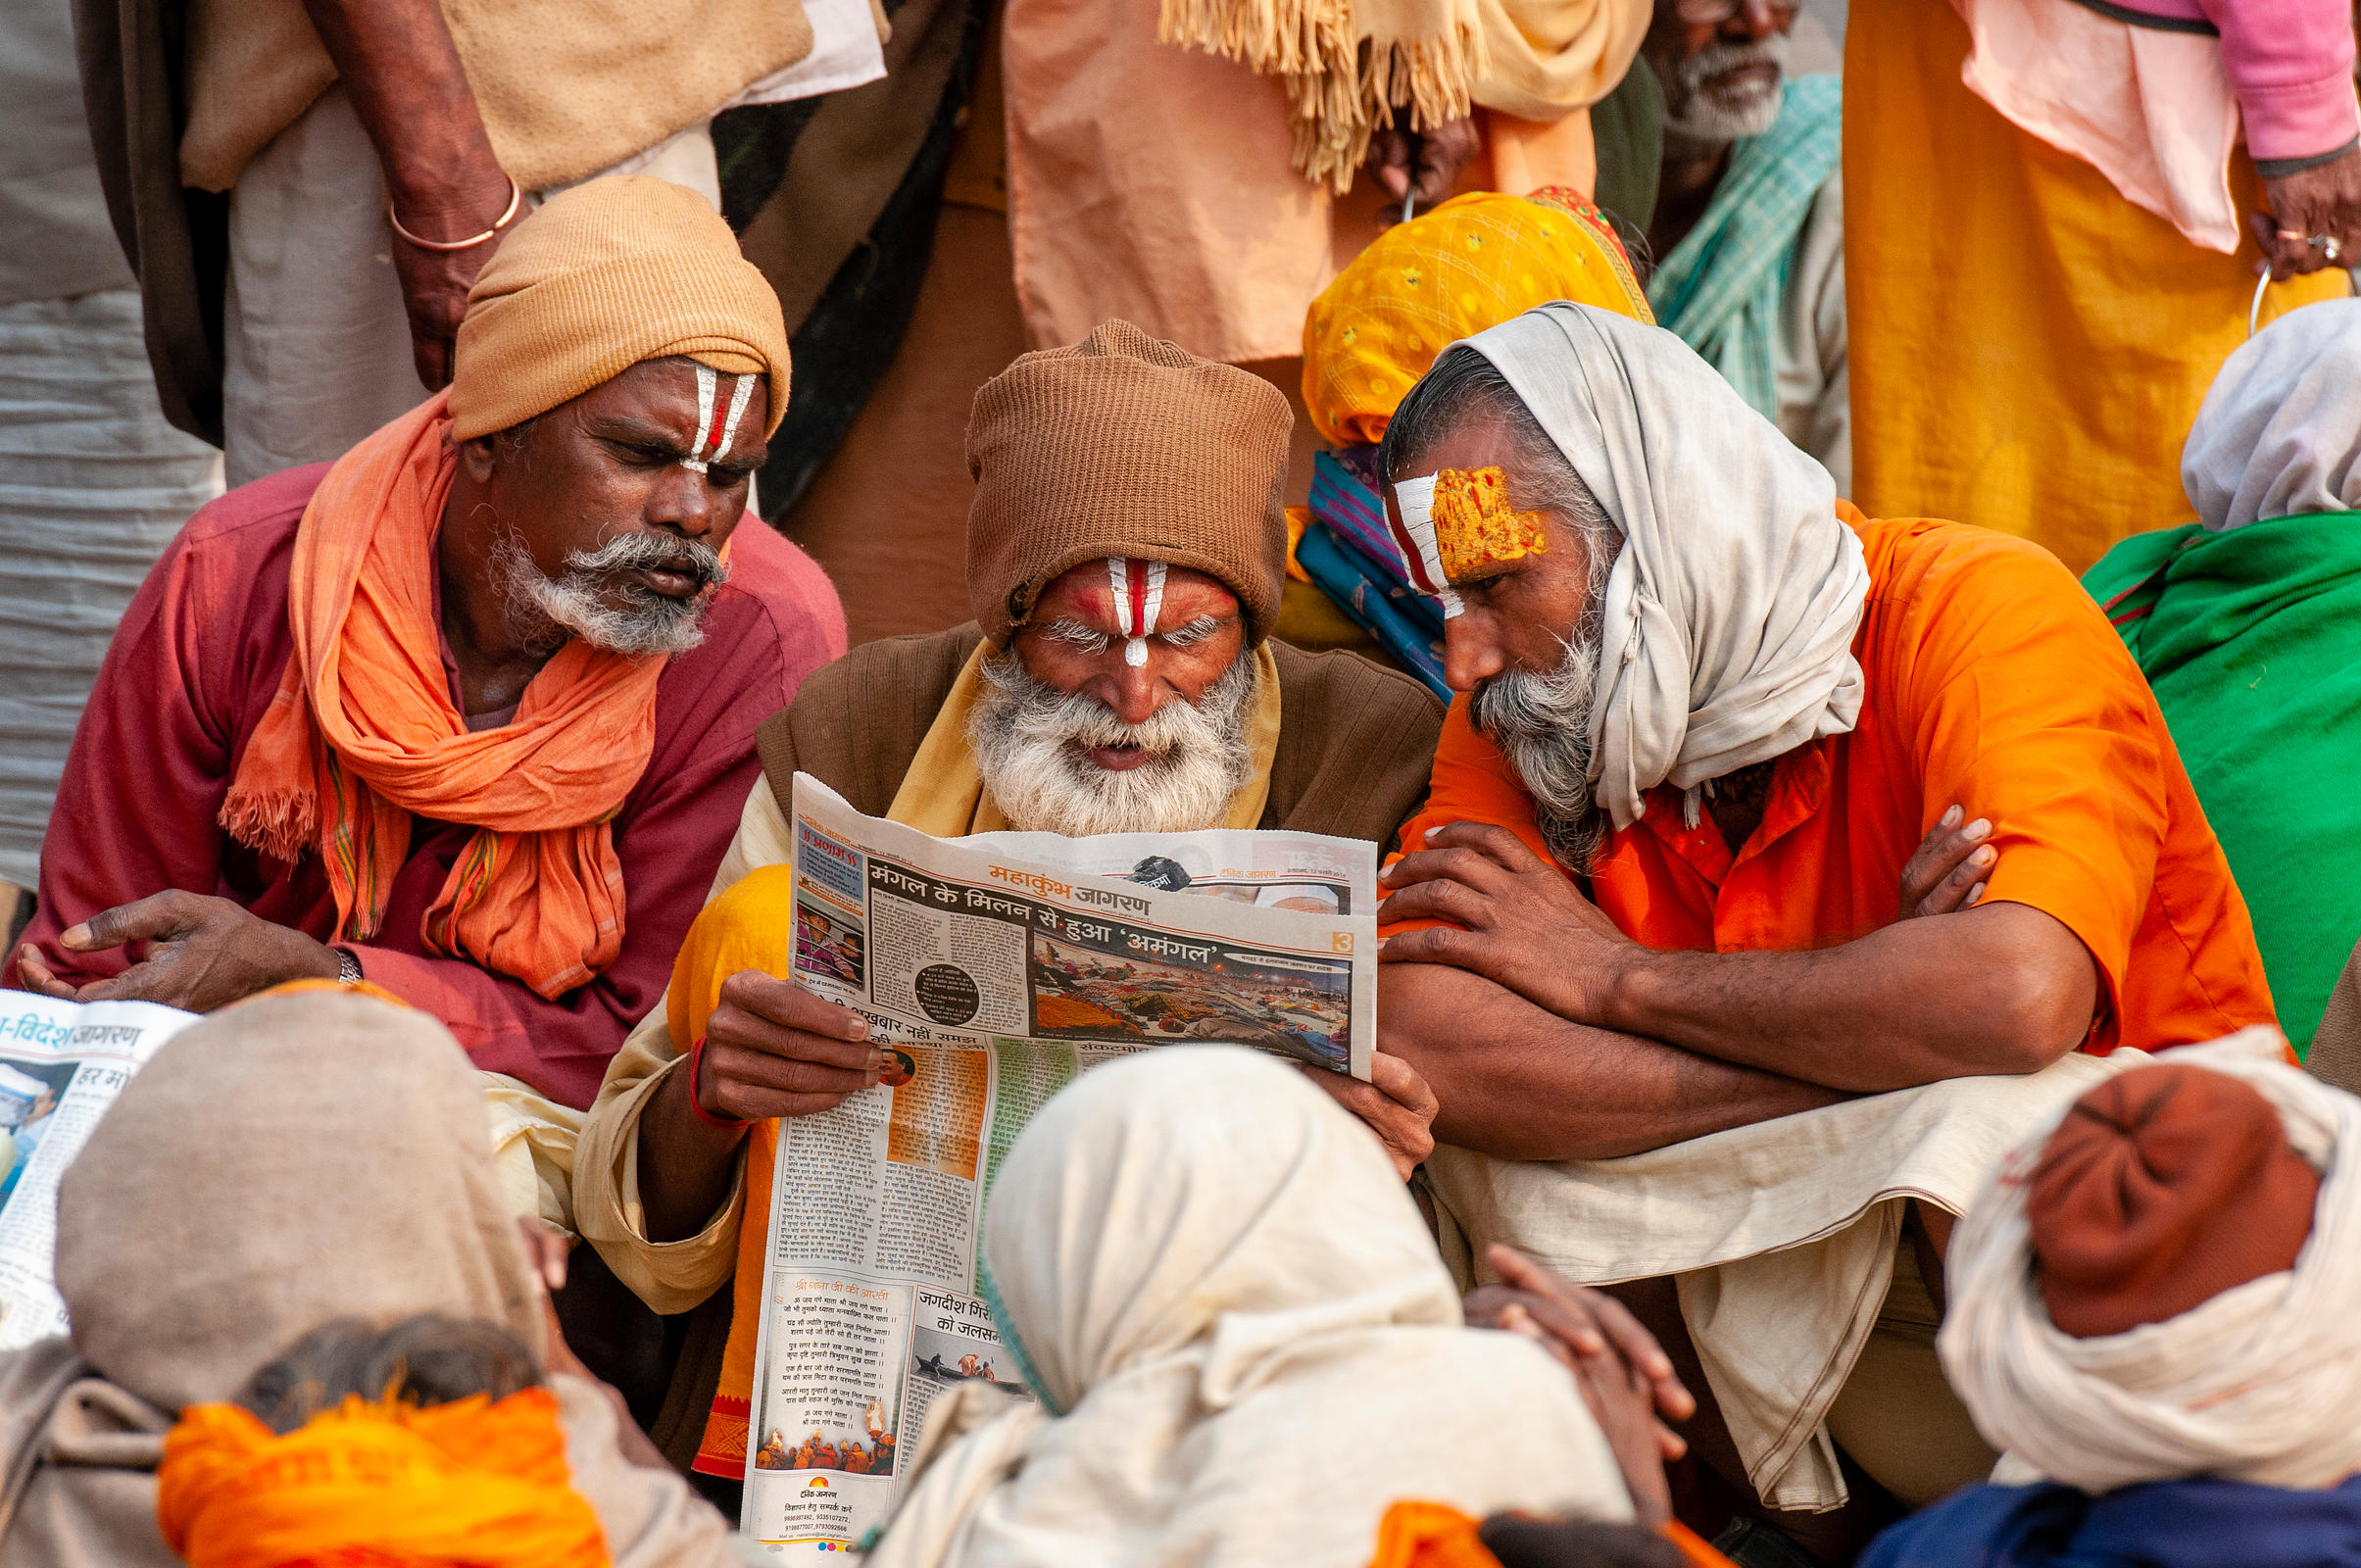 A group of pilgrims read newspaper while the others wait for langar (communal meals) during the kumbh mela, Allahabad